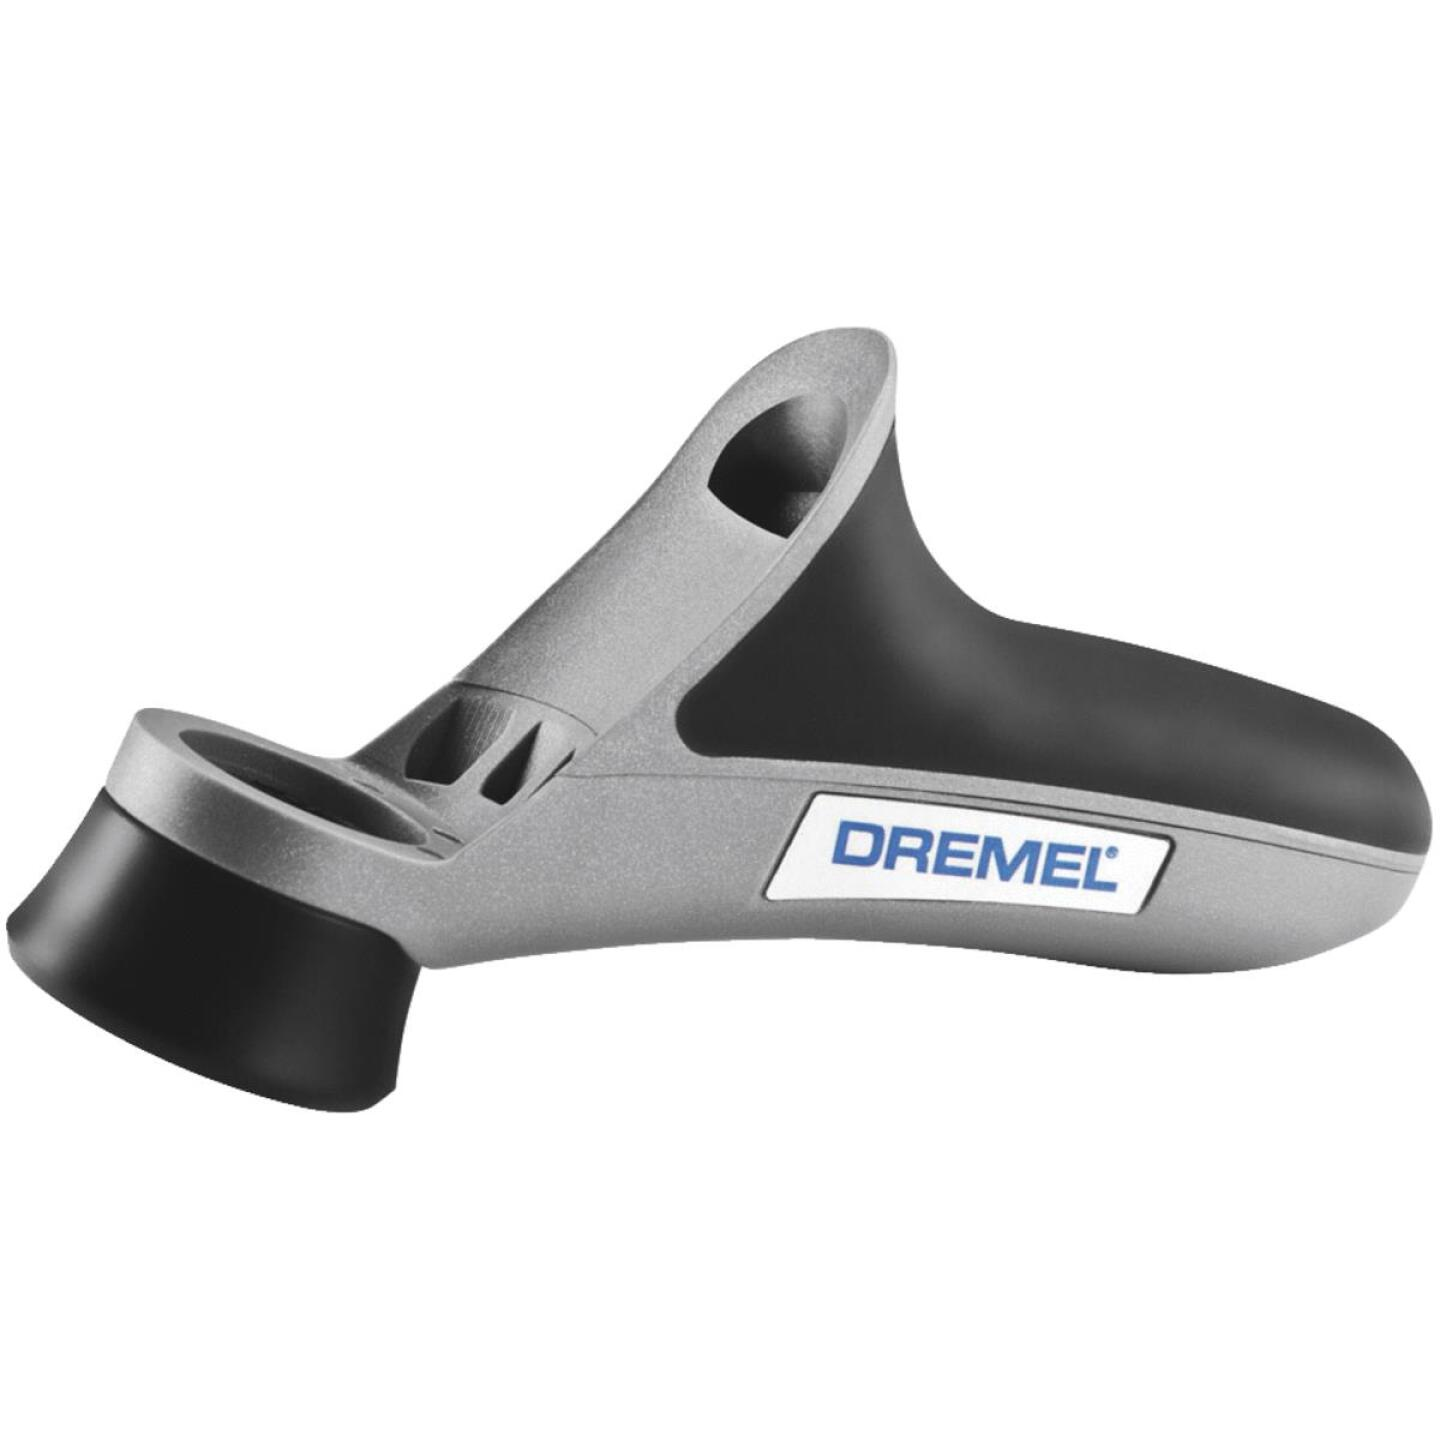 Dremel Rotary Tool Detailer's Grip Attachment Image 1